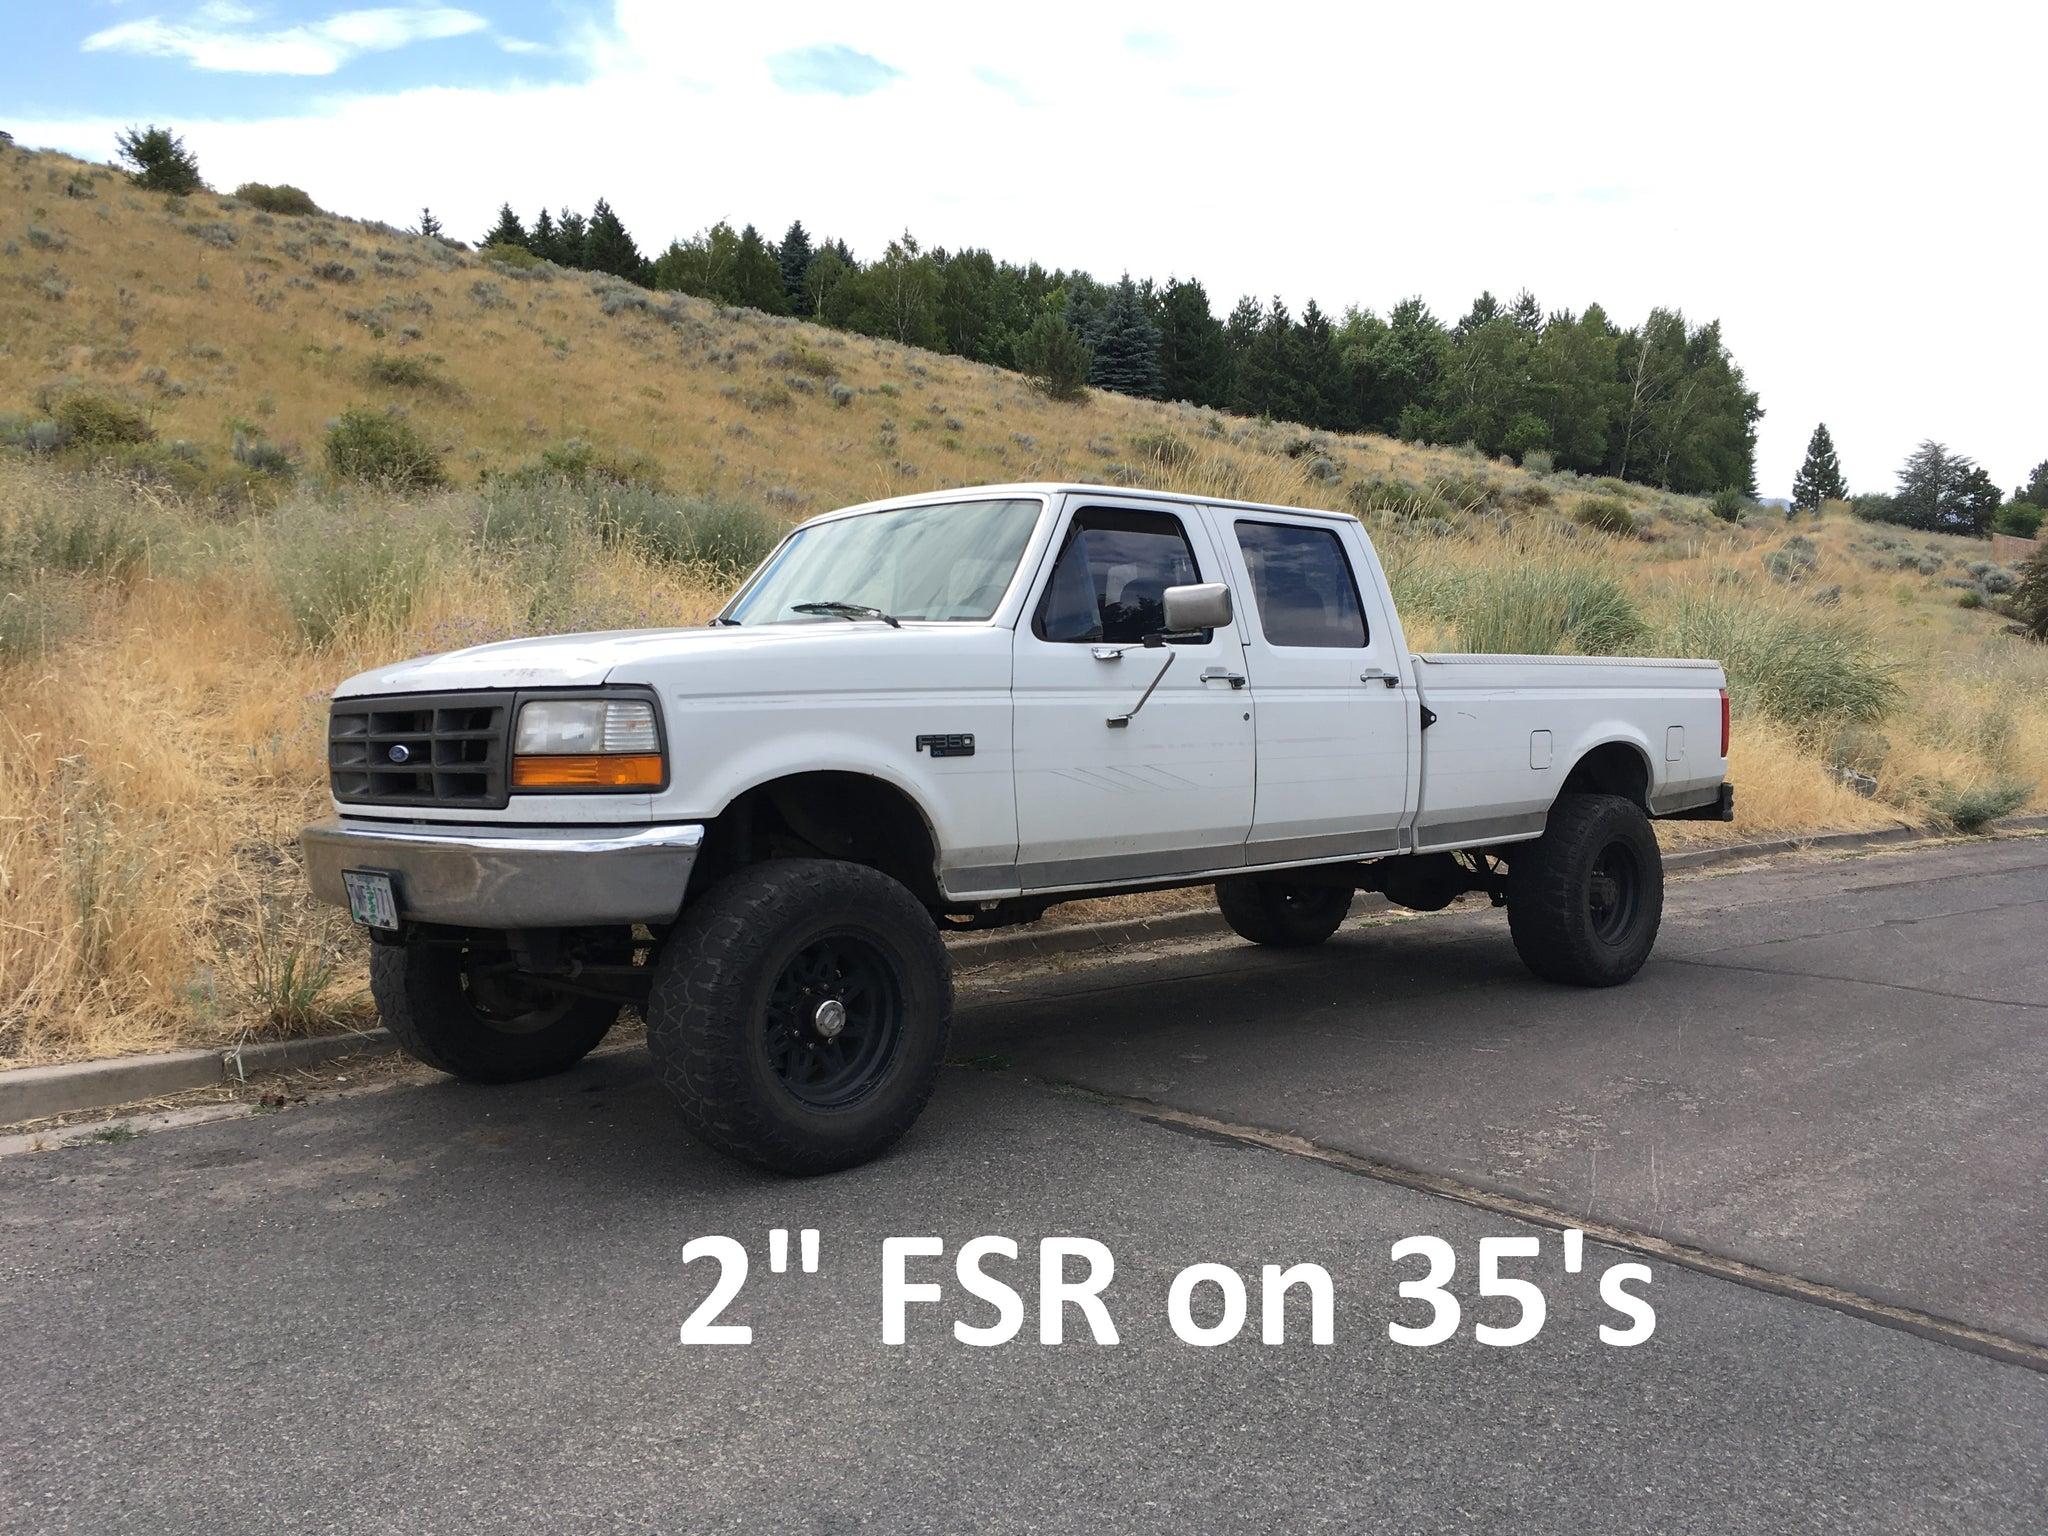 92-97 F-250/350 Superduty Swap Complete Kits – Sky Manufacturing